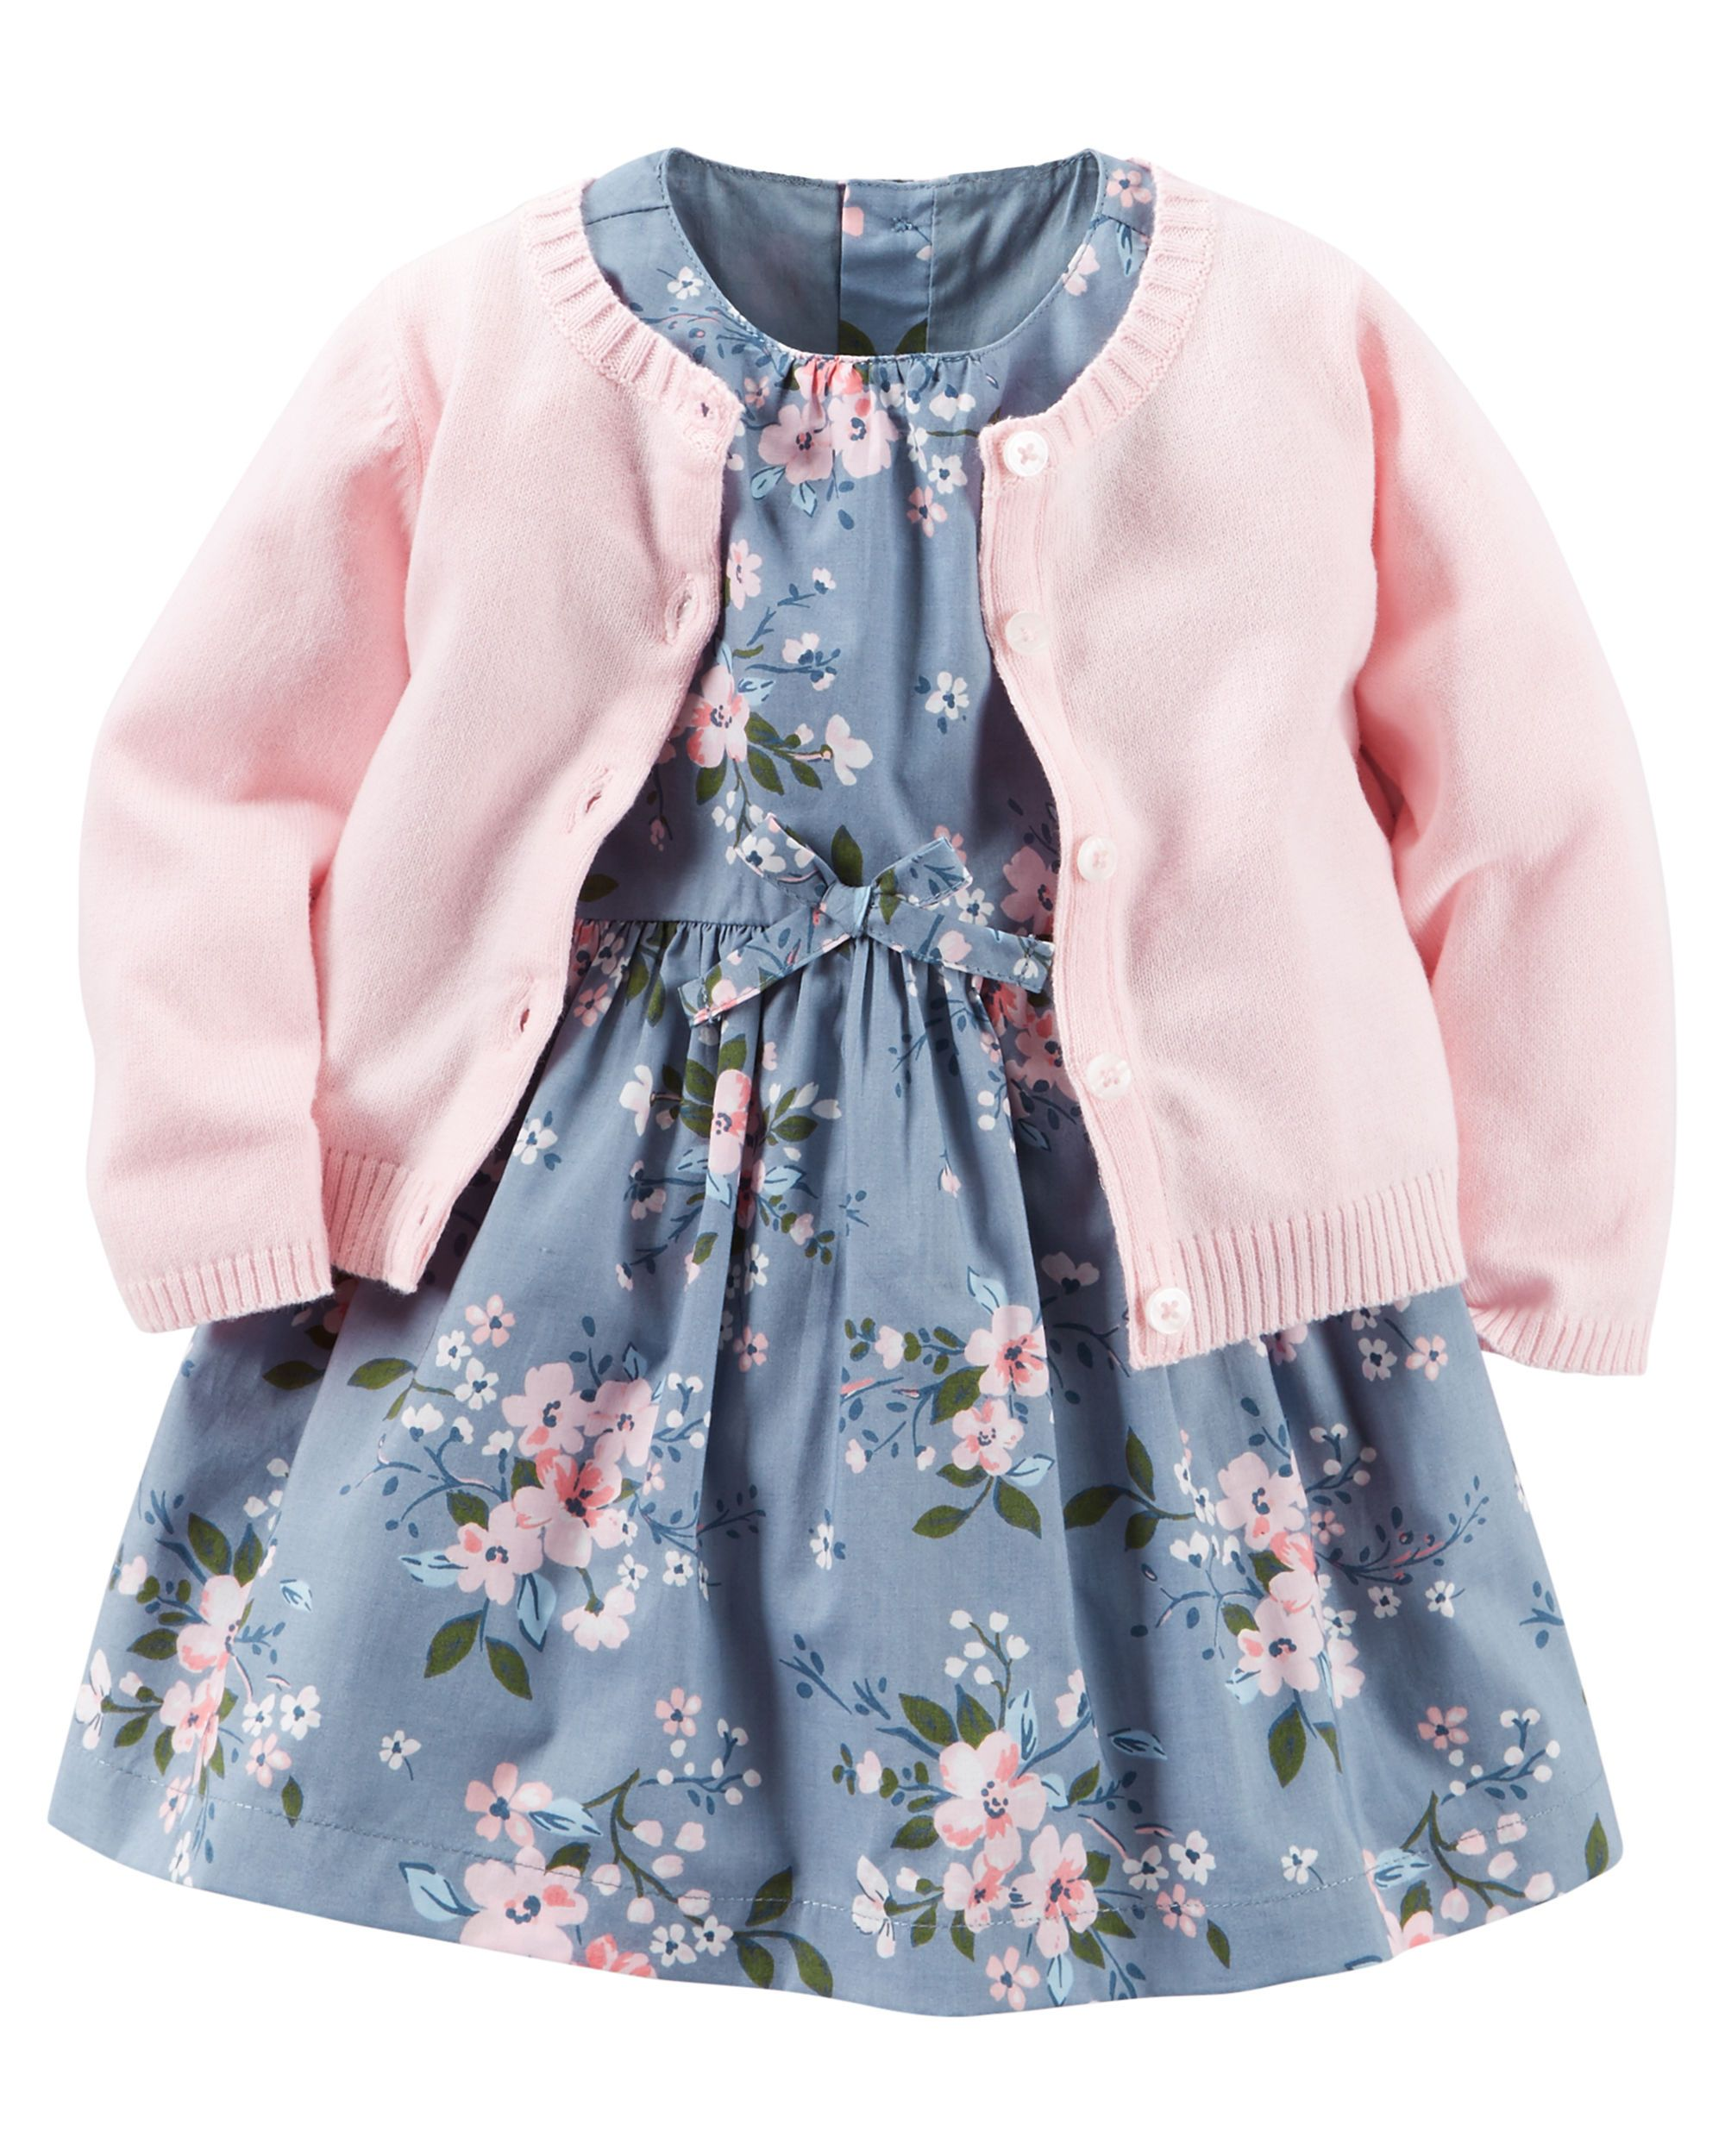 fc7349acb12 ... girls toddler   baby dresses. 2-Piece Dress   Cardigan Set